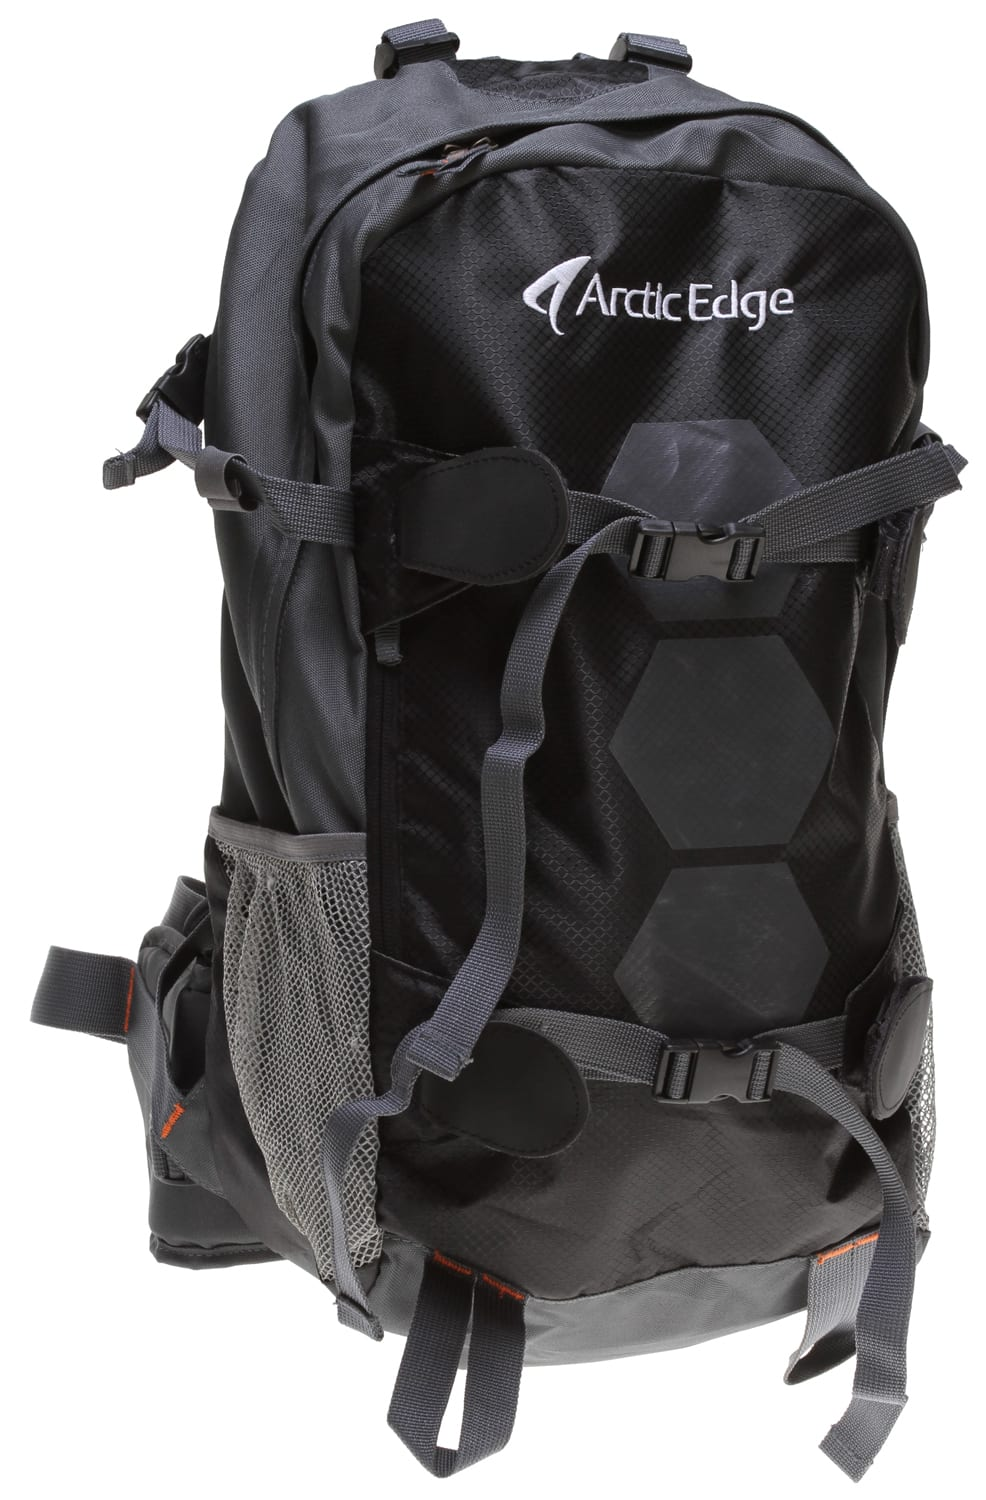 Arctic Edge Vallee 25L Backpack Black